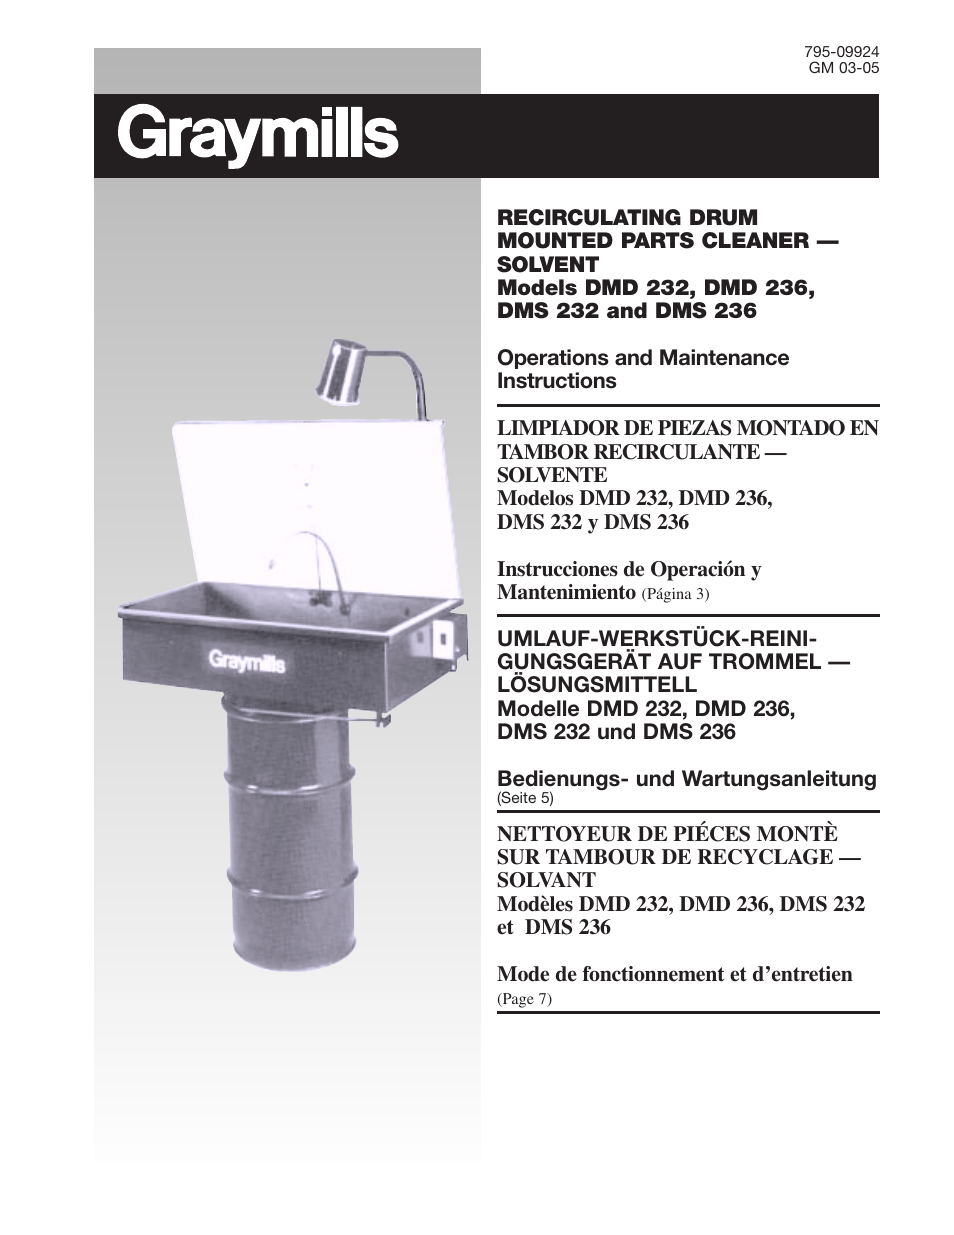 Graymills DM 236 Drum Mount OMI User Manual | 12 pages | Also for